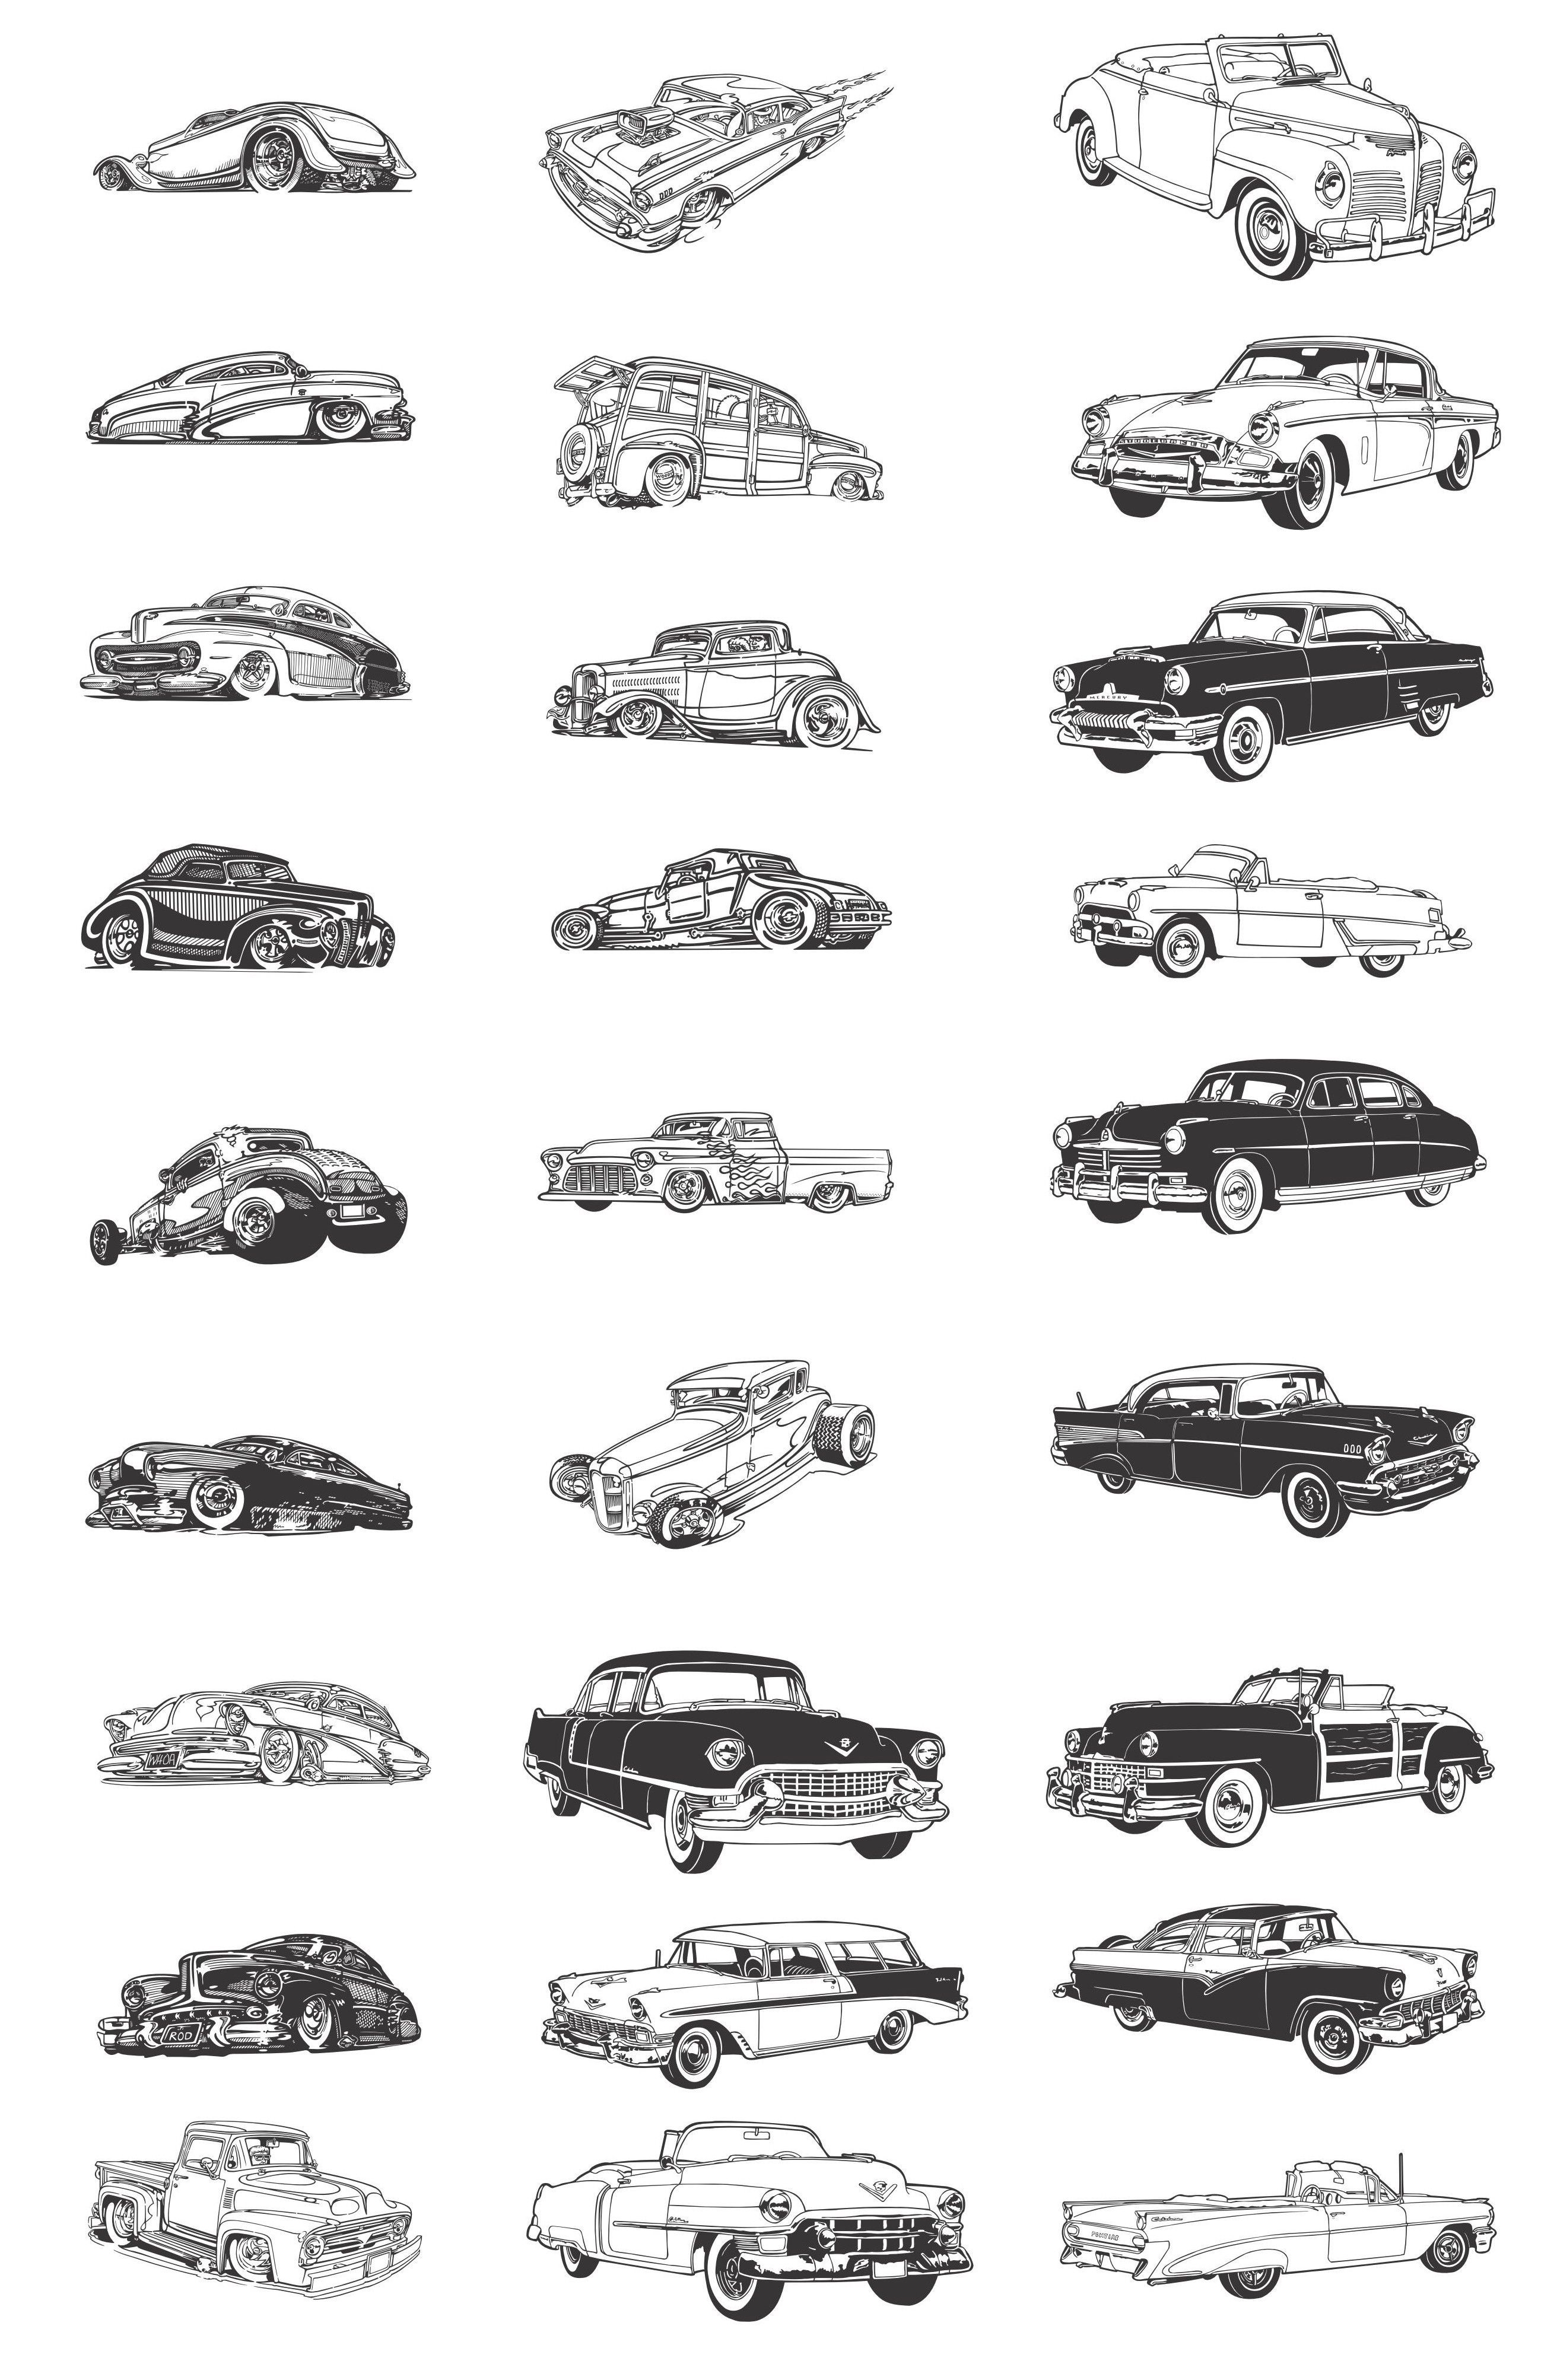 Old Classic Cars Silhouettes We Can Cover All These Models And A